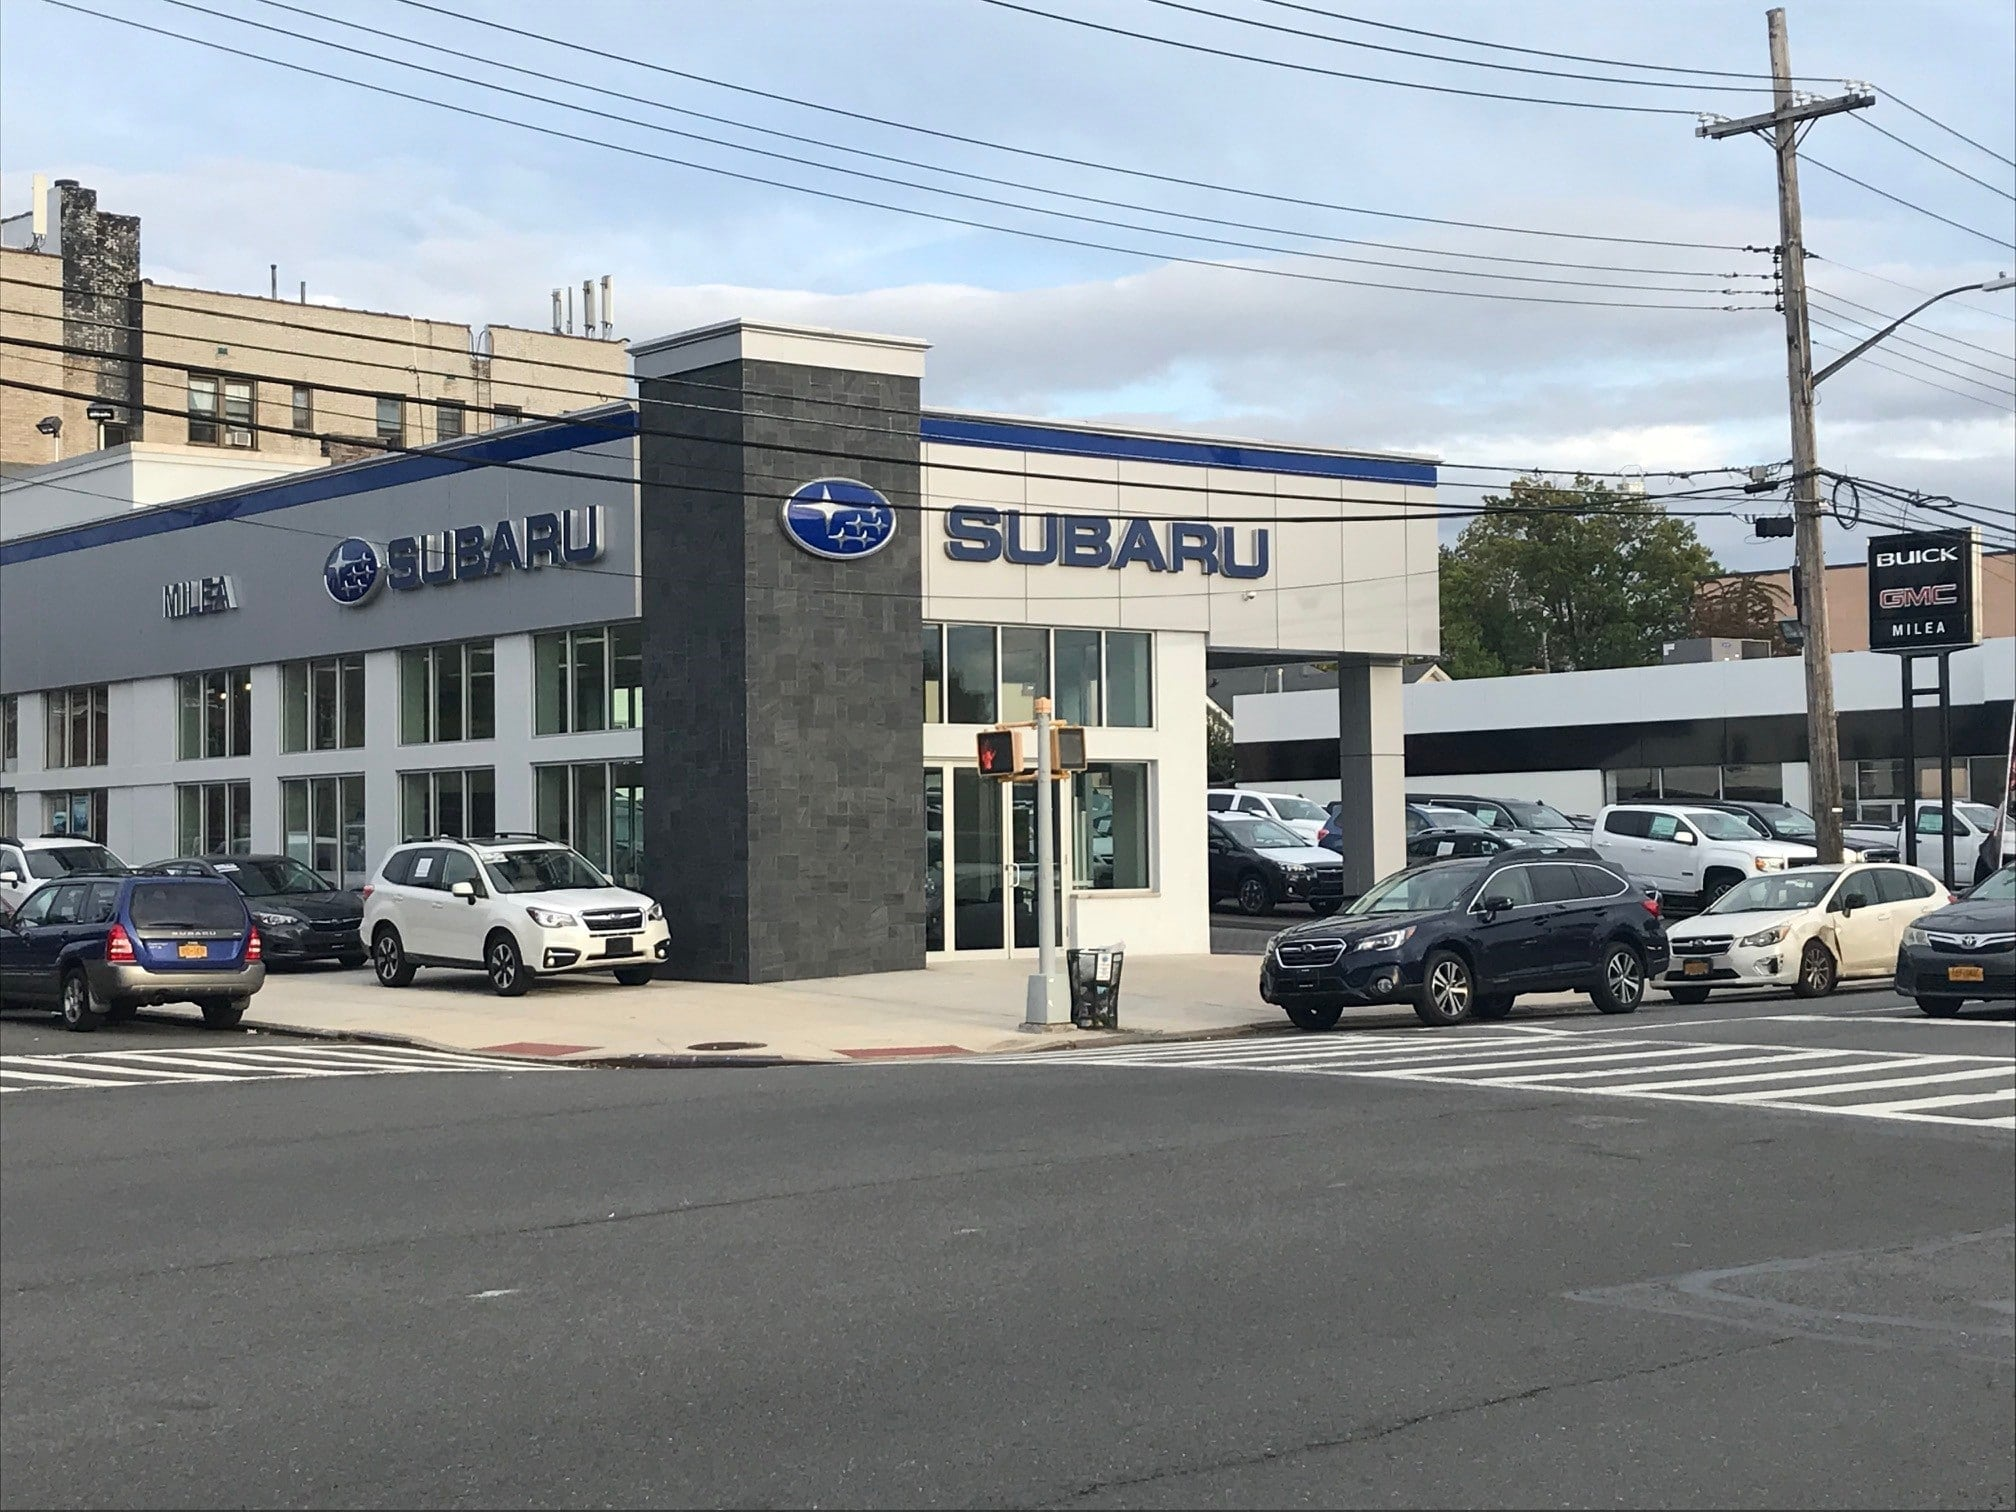 Milea subaru new subaru used car dealer bronx nyc serving ave in bronx new york give us a call with any questions and check out our about us page we are looking forward to serving your automotive needs solutioingenieria Image collections